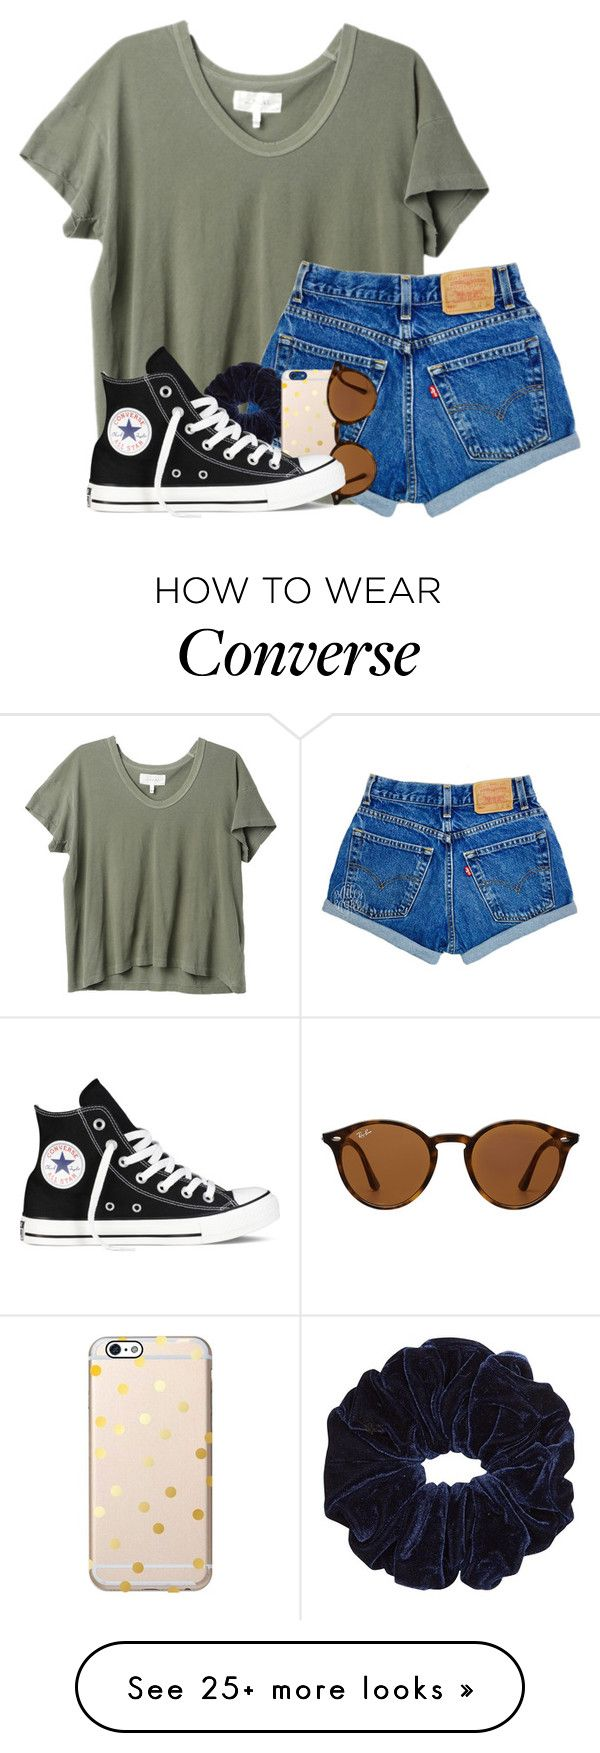 Converse Store 29 On Outfits With Converse Casual Outfits Clothes